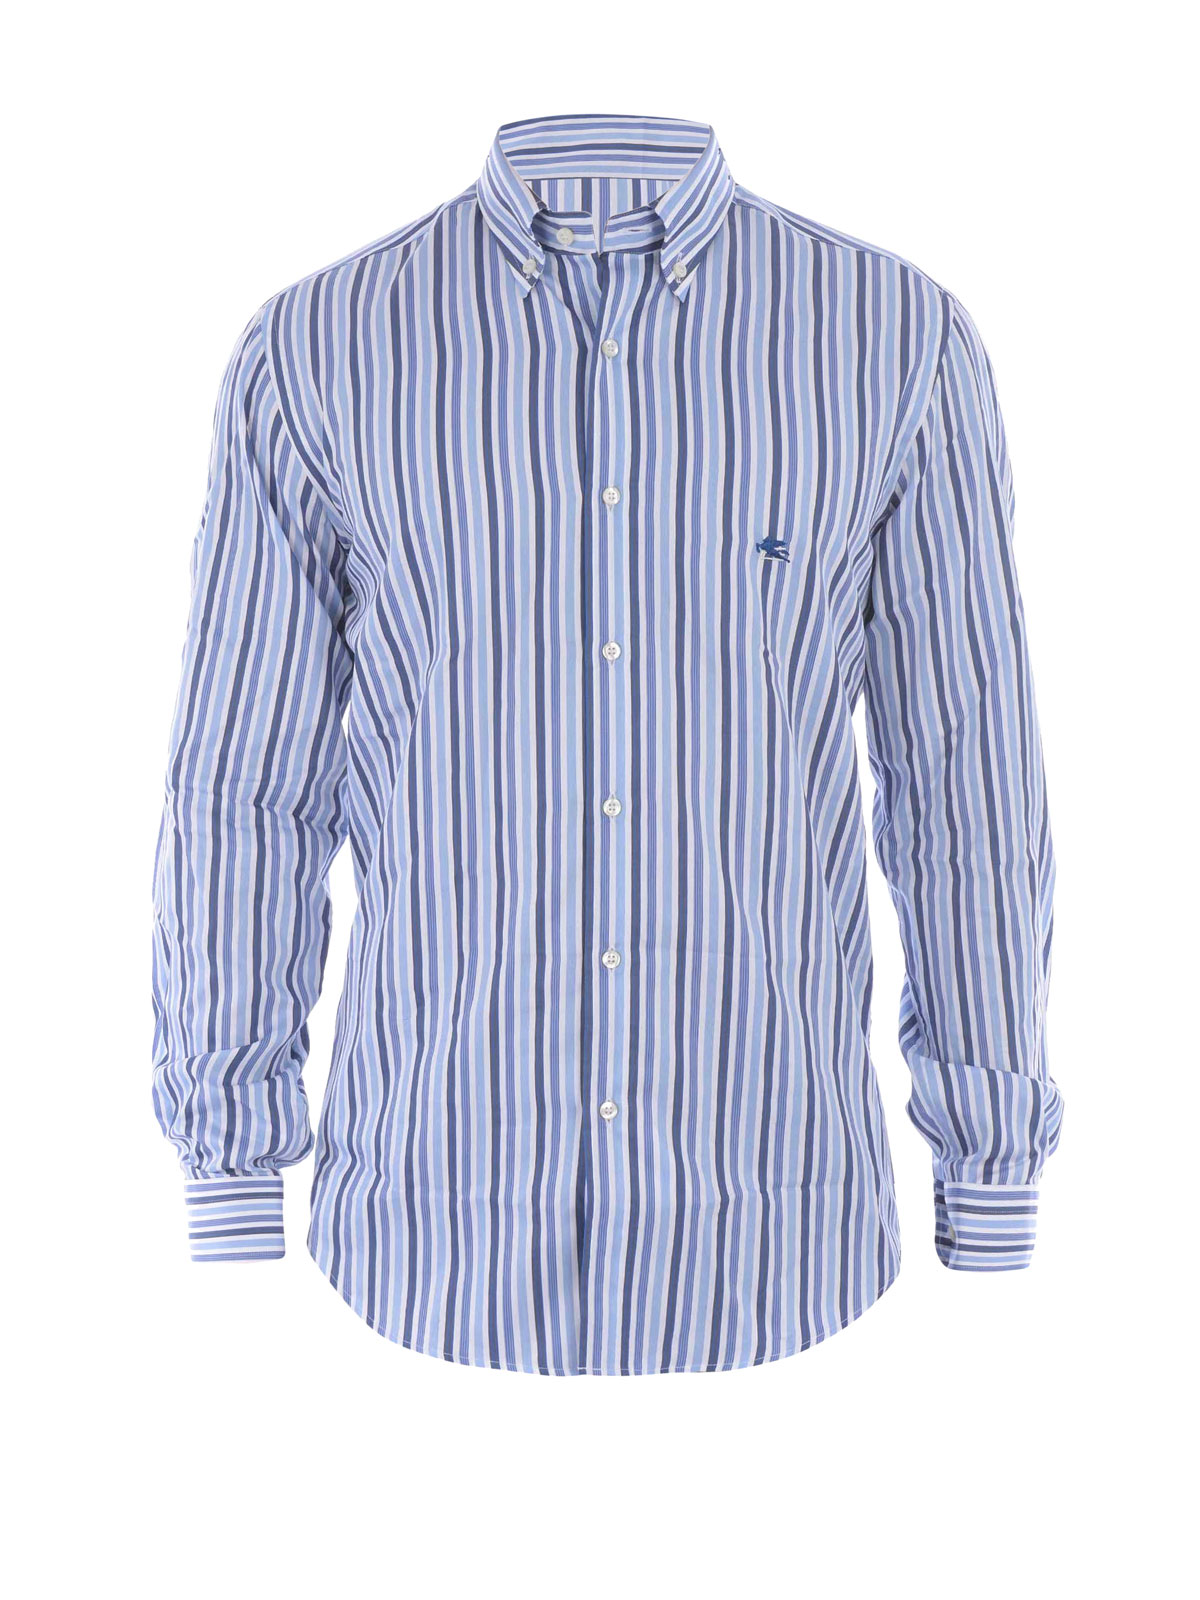 Striped cotton poplin shirt by etro shirts shop online for What is a poplin shirt